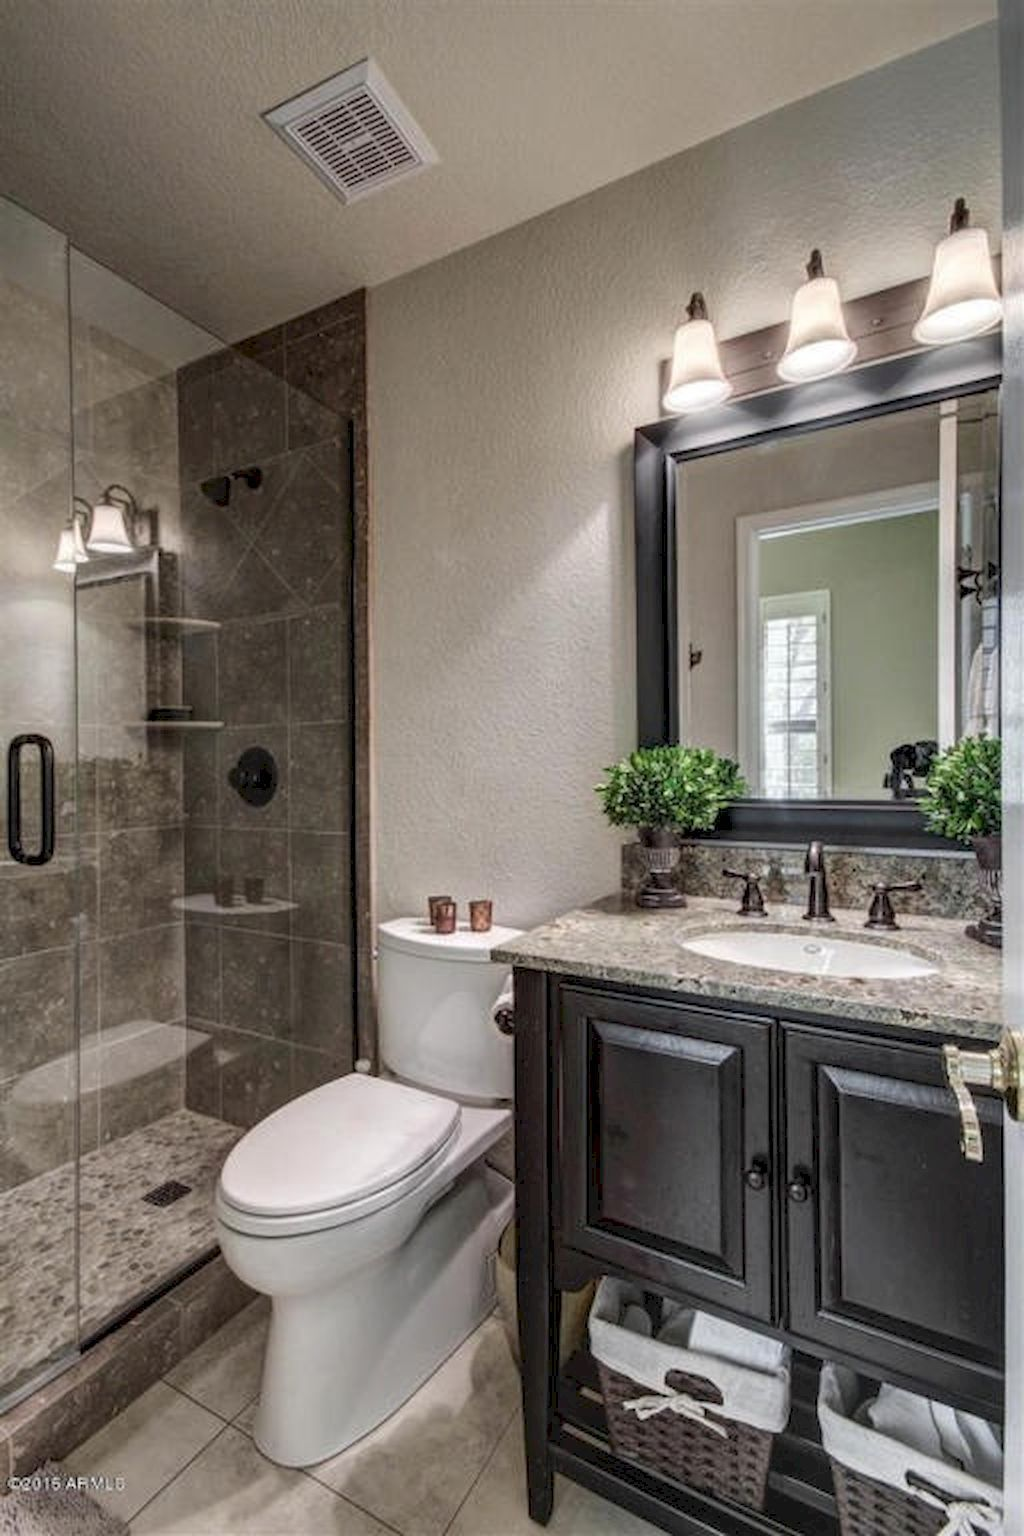 redo a small bathroom%0A Small bathroom remodel ideas